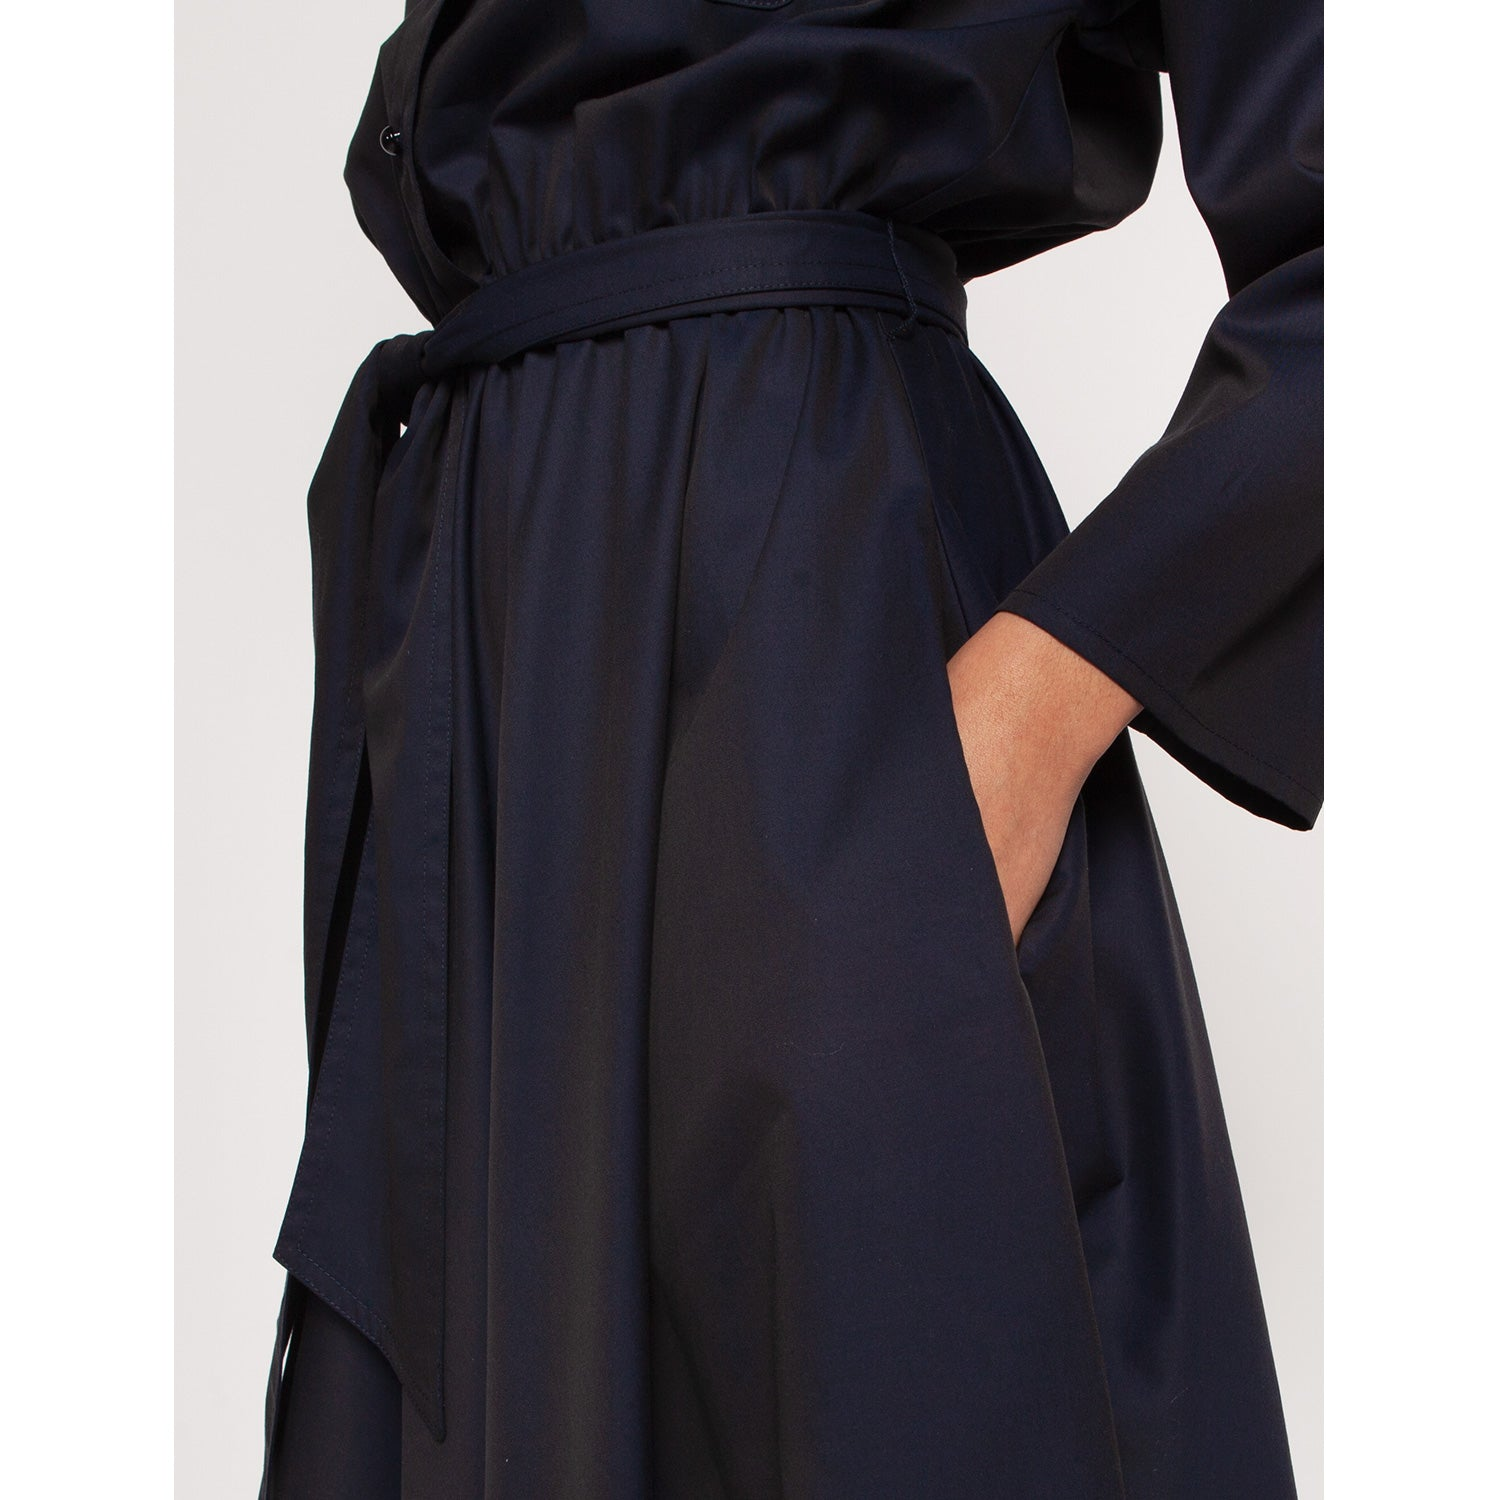 Liz Shirt Dress Navy